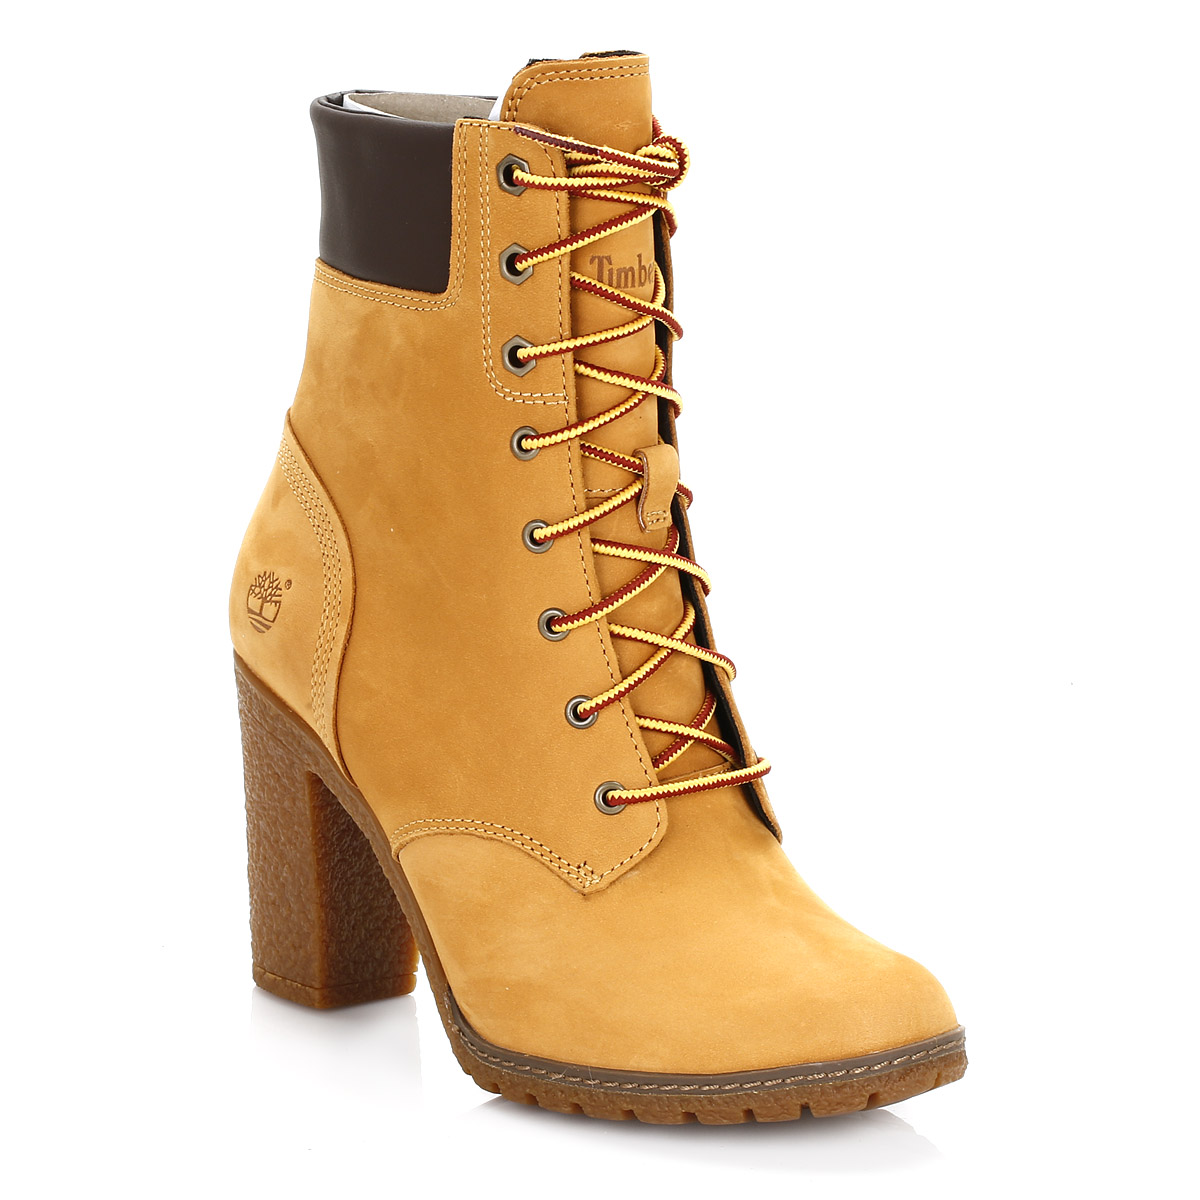 Model The Yellow Lace Driving Mocs Are One Of The More  Price $5999 And Up Depending On Sizecolor Selected Timberland Is, Of Course, Famous For Its Classic Waterproof Boot, But The Brand Has Many Ot